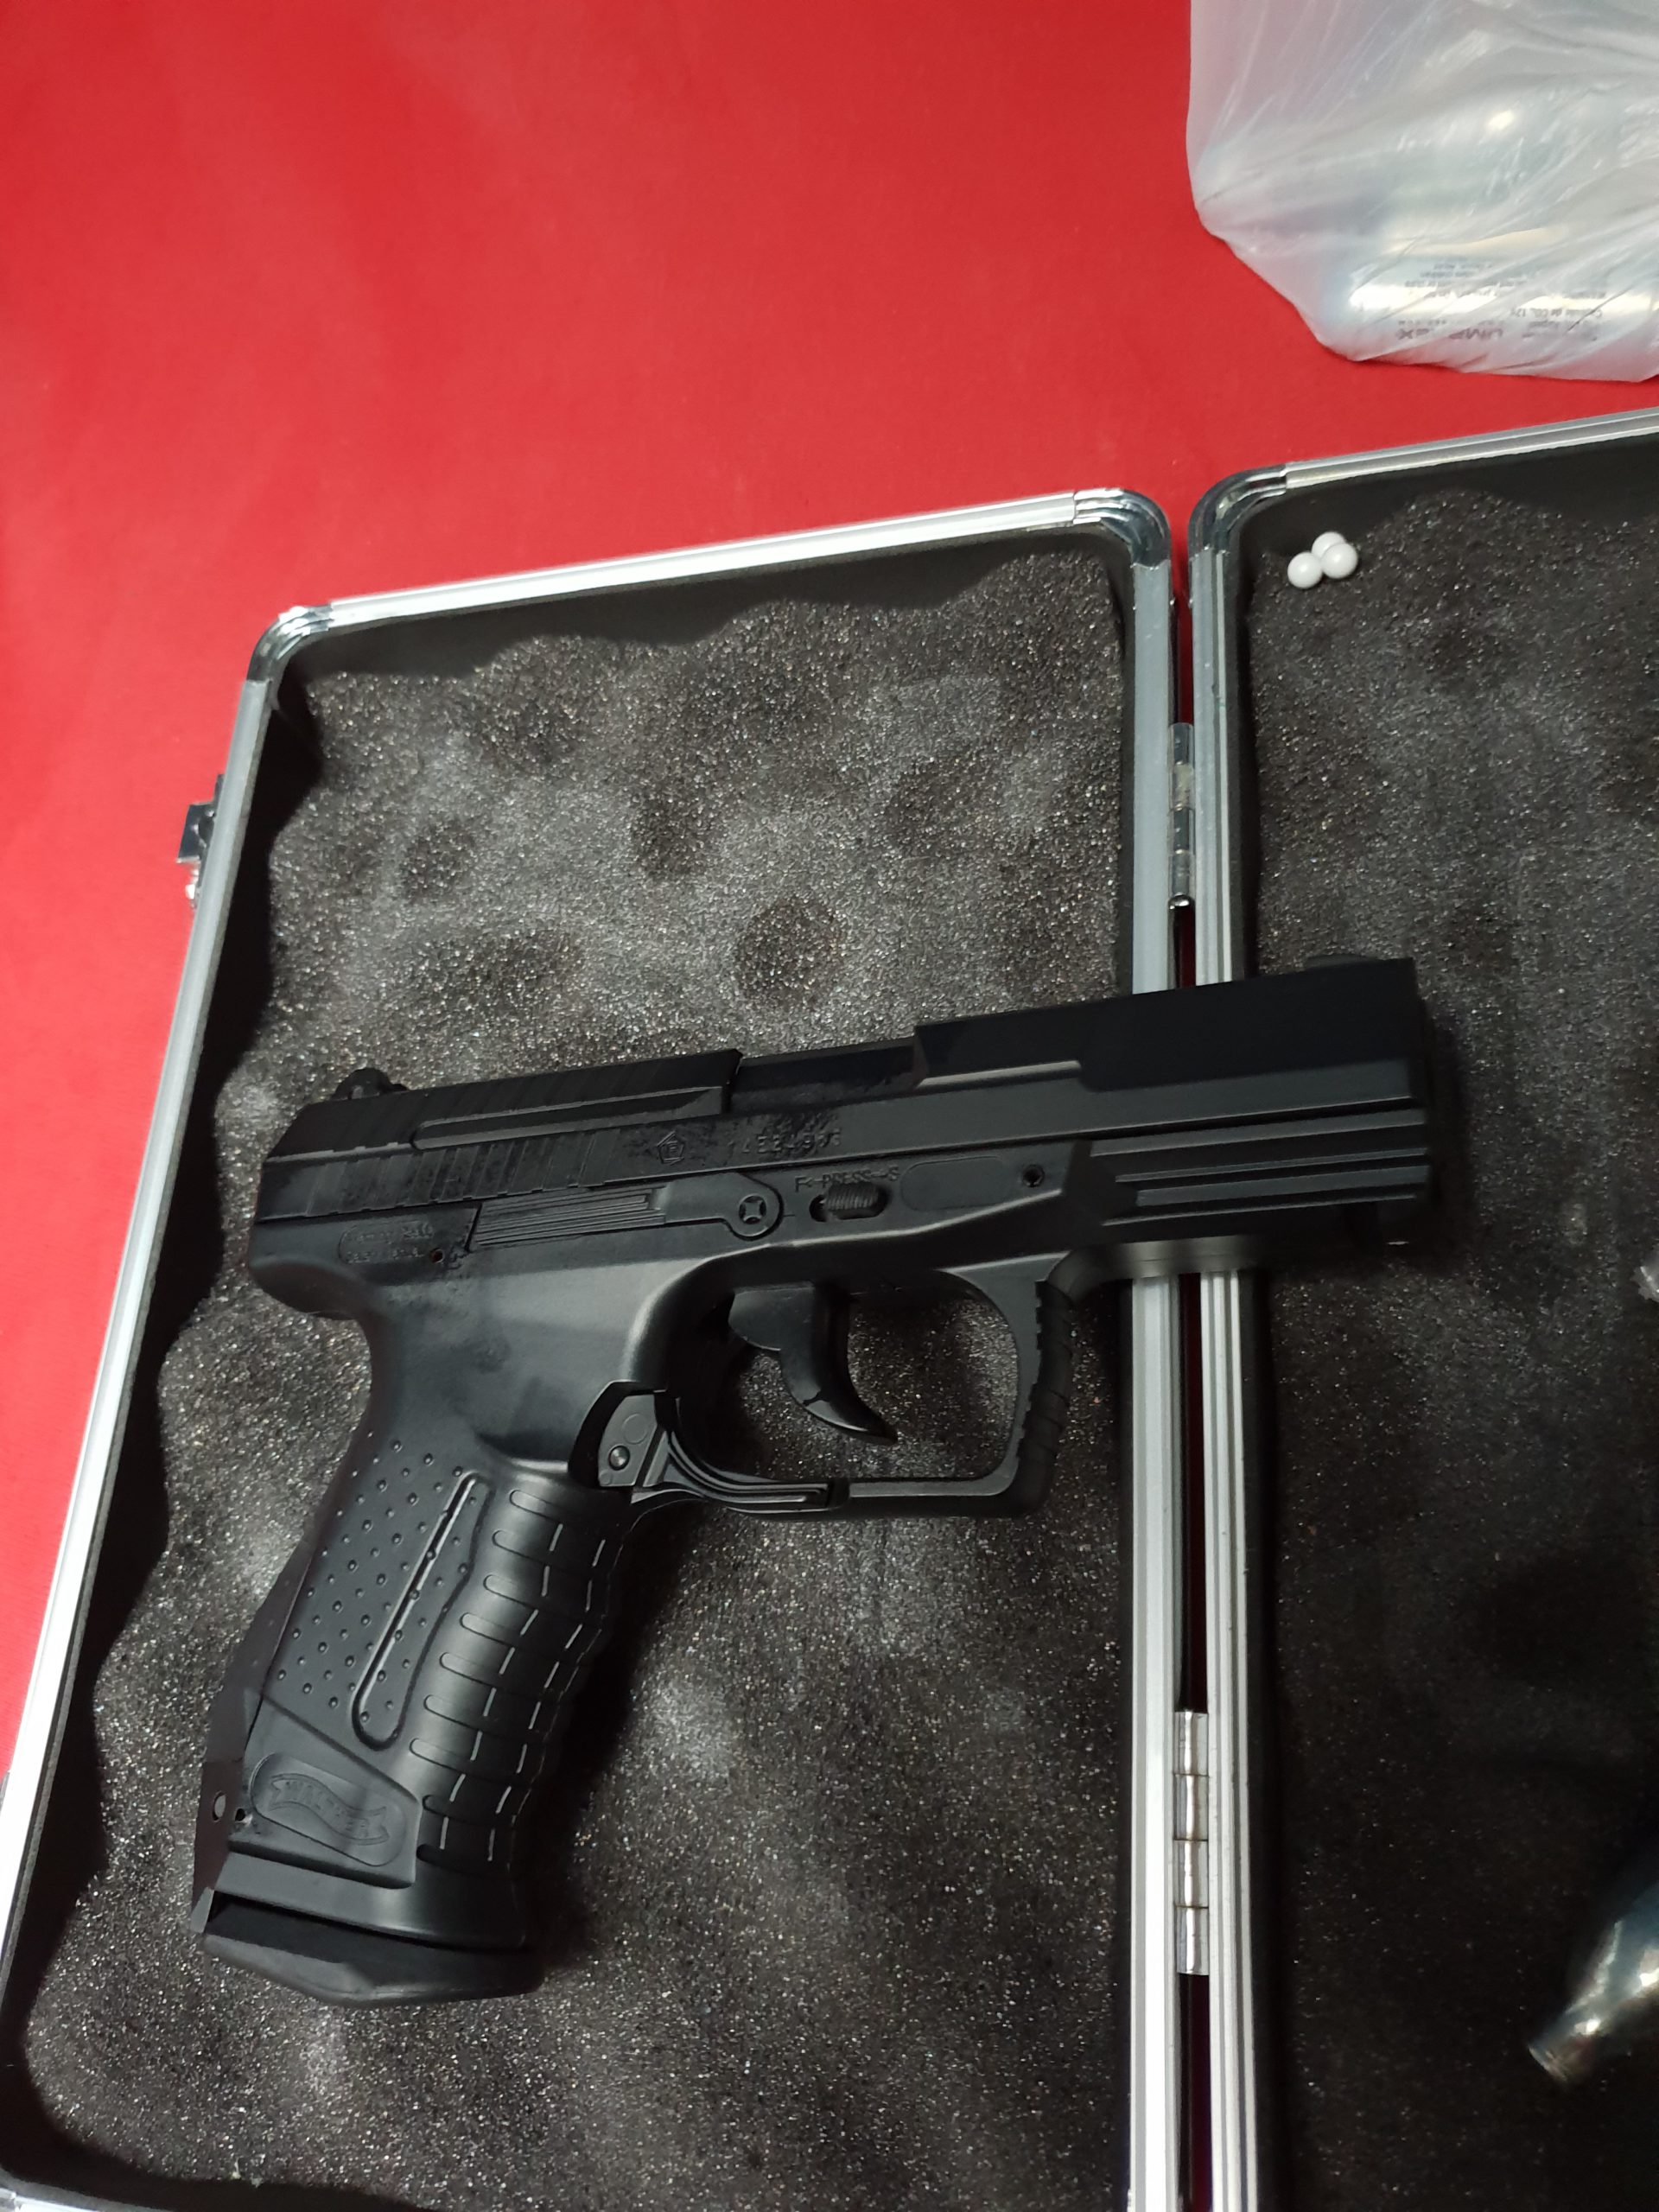 P99 walther